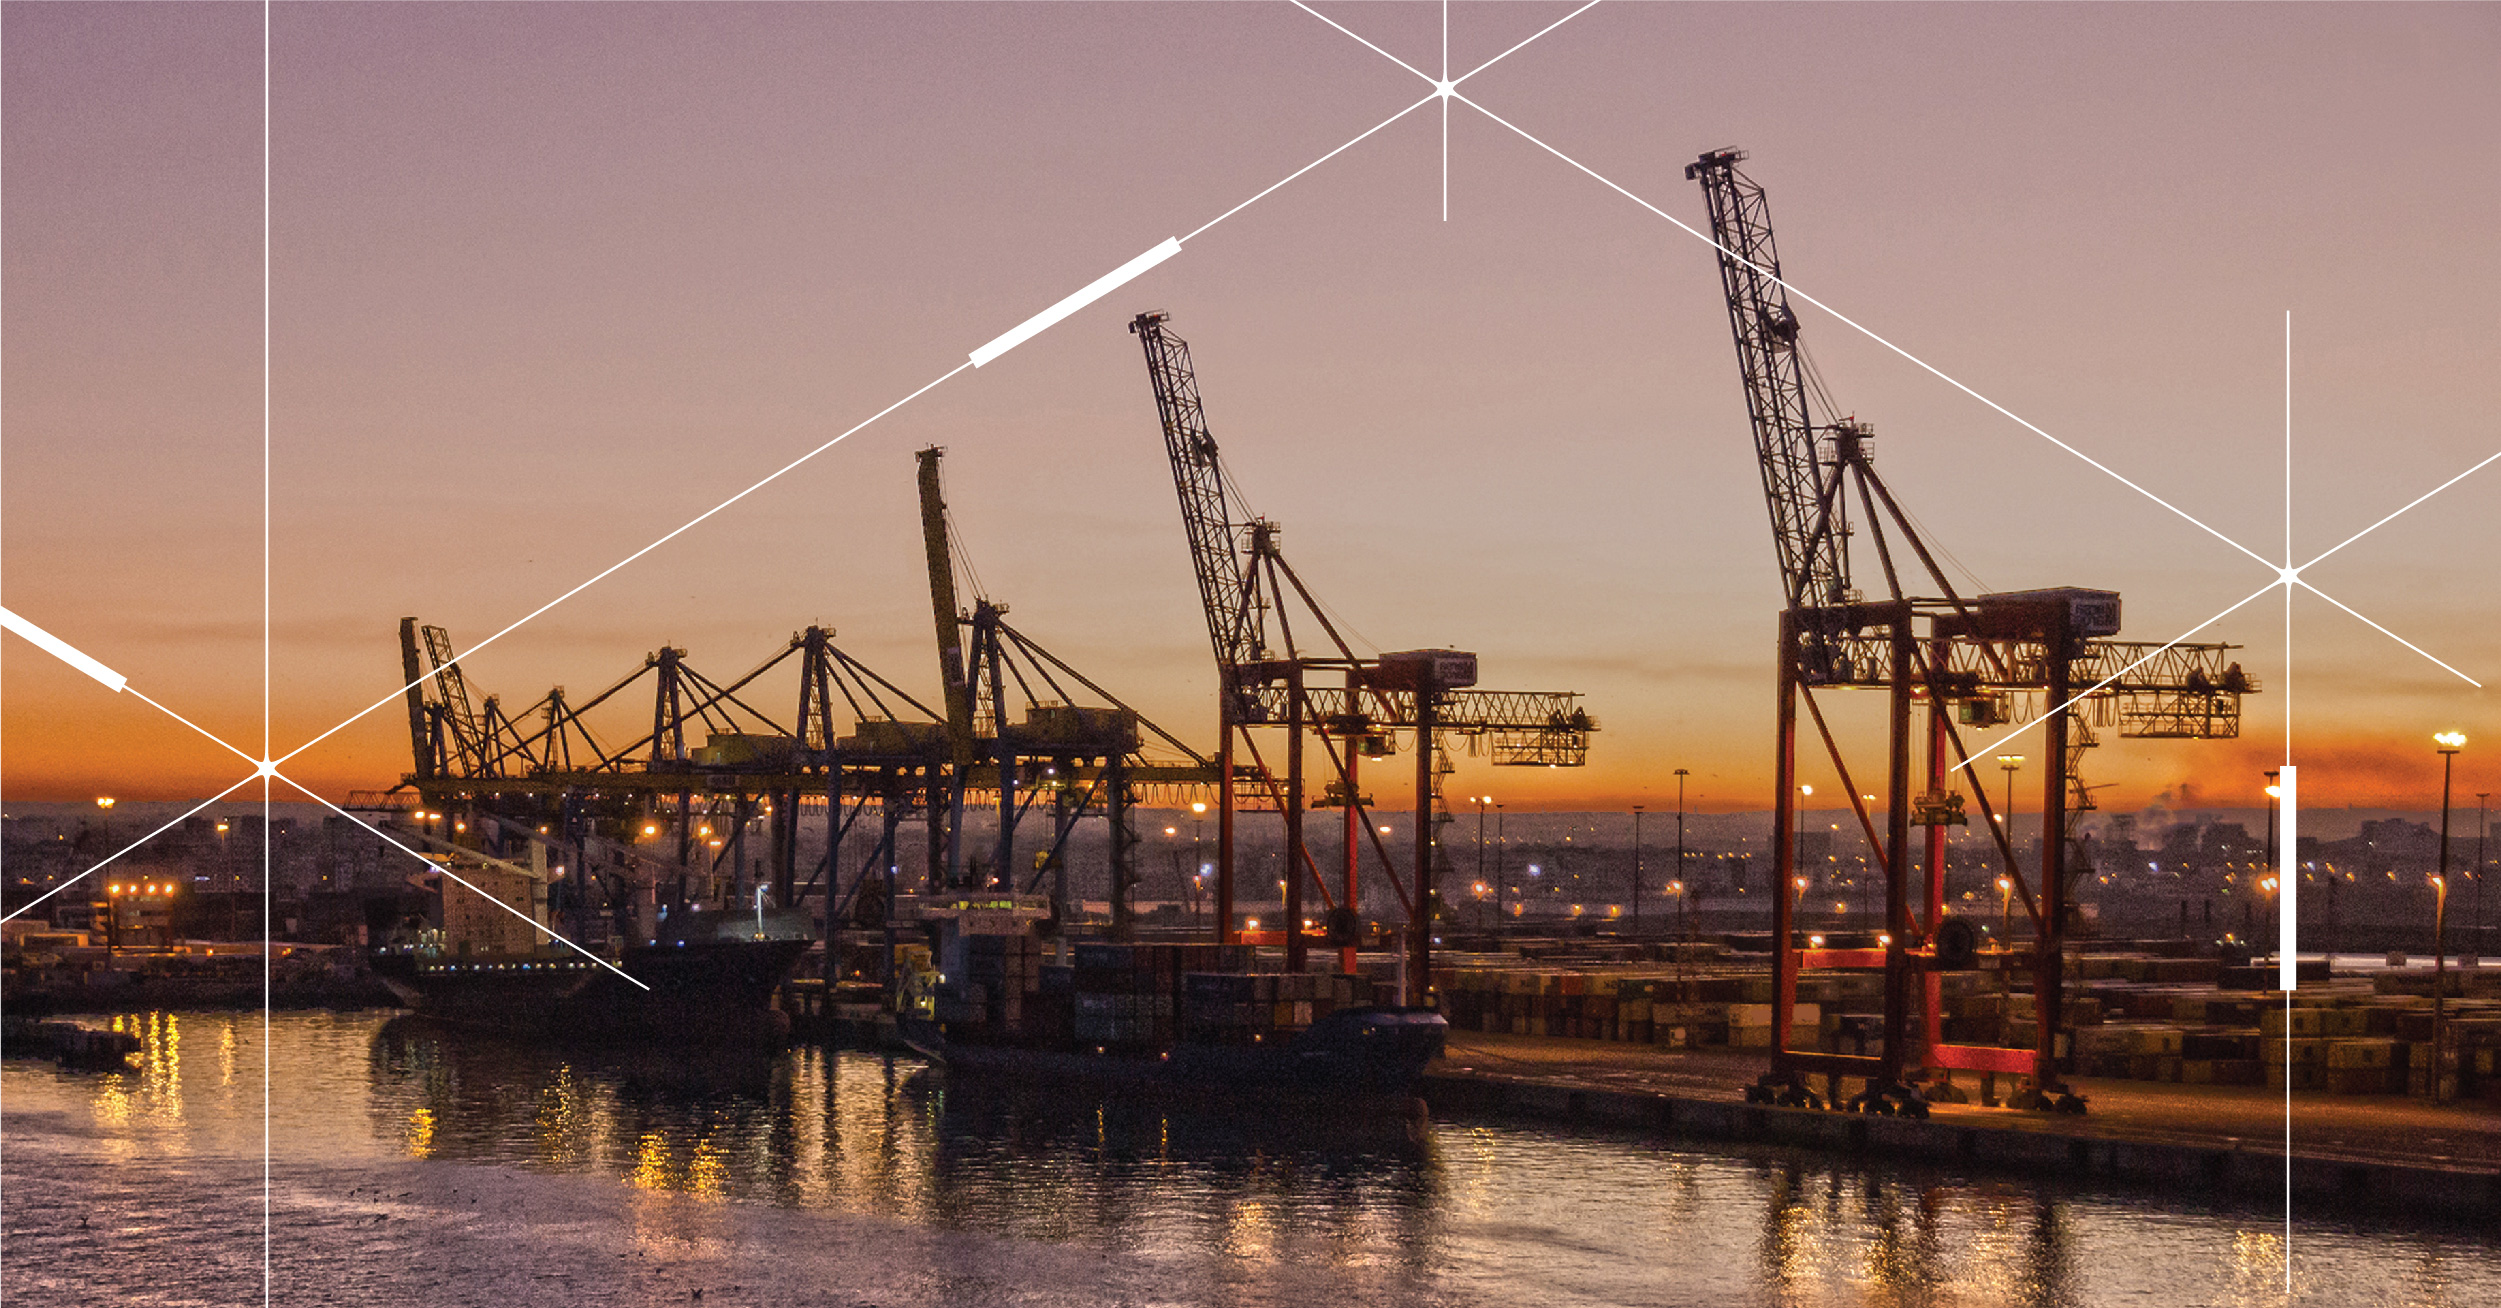 The Port of Casablanca, Morocco, taps into the benefits of the inteliLIGHT's smart lighting solution – energy savings and improved safety